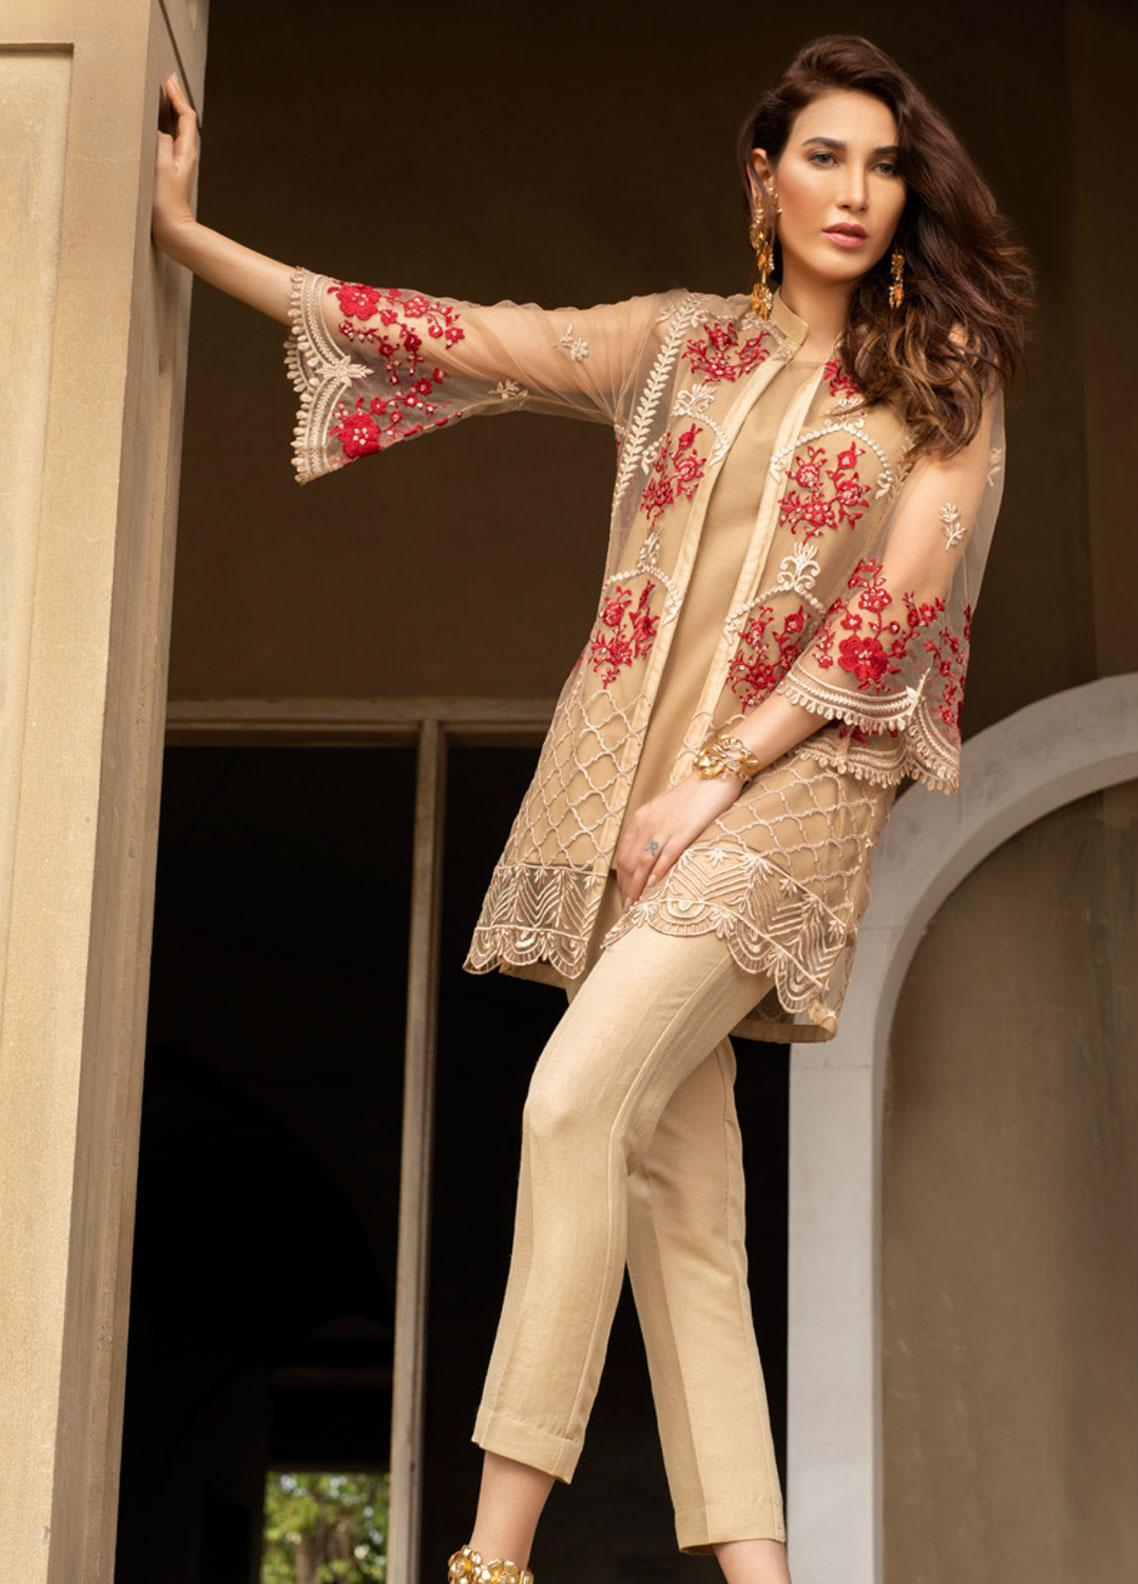 Azure Embroidered Zari Net Unstitched Kurties AZU19-E3 02 ETHEREAL ROSE - Luxury Formal Collection